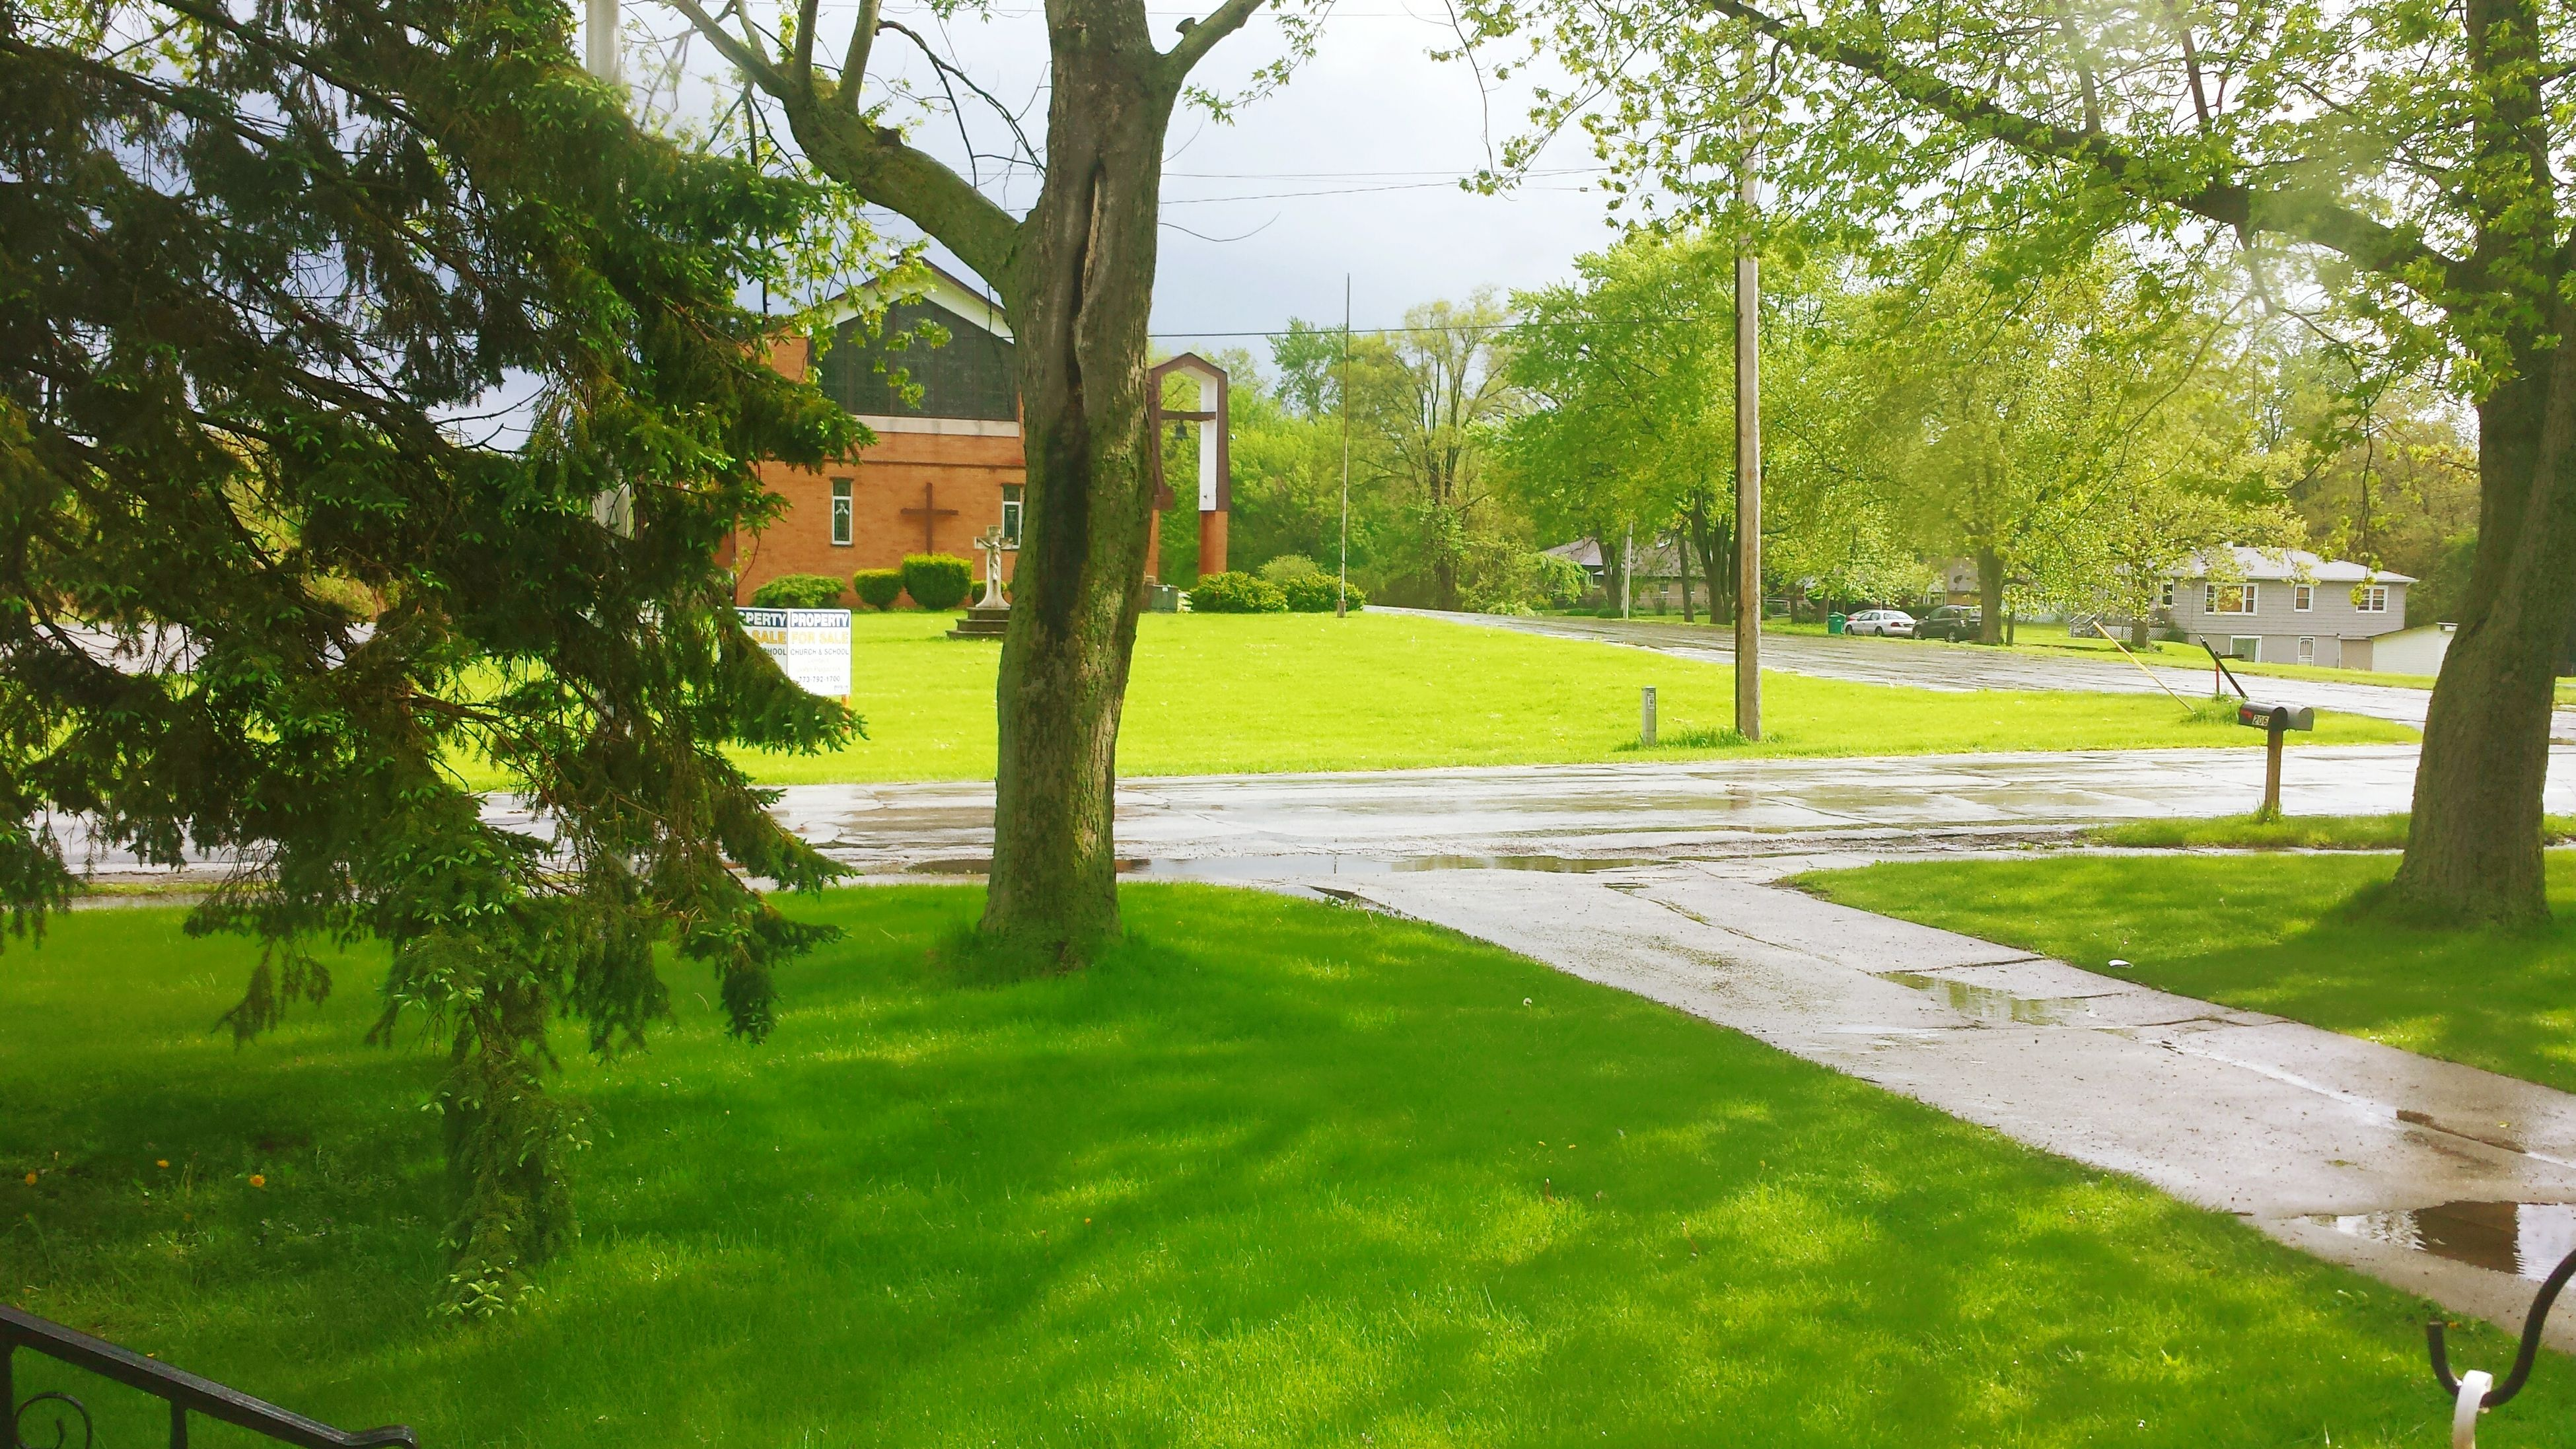 tree, grass, green color, building exterior, built structure, architecture, growth, lawn, park - man made space, tree trunk, sunlight, nature, shadow, footpath, tranquility, branch, day, park, road, field